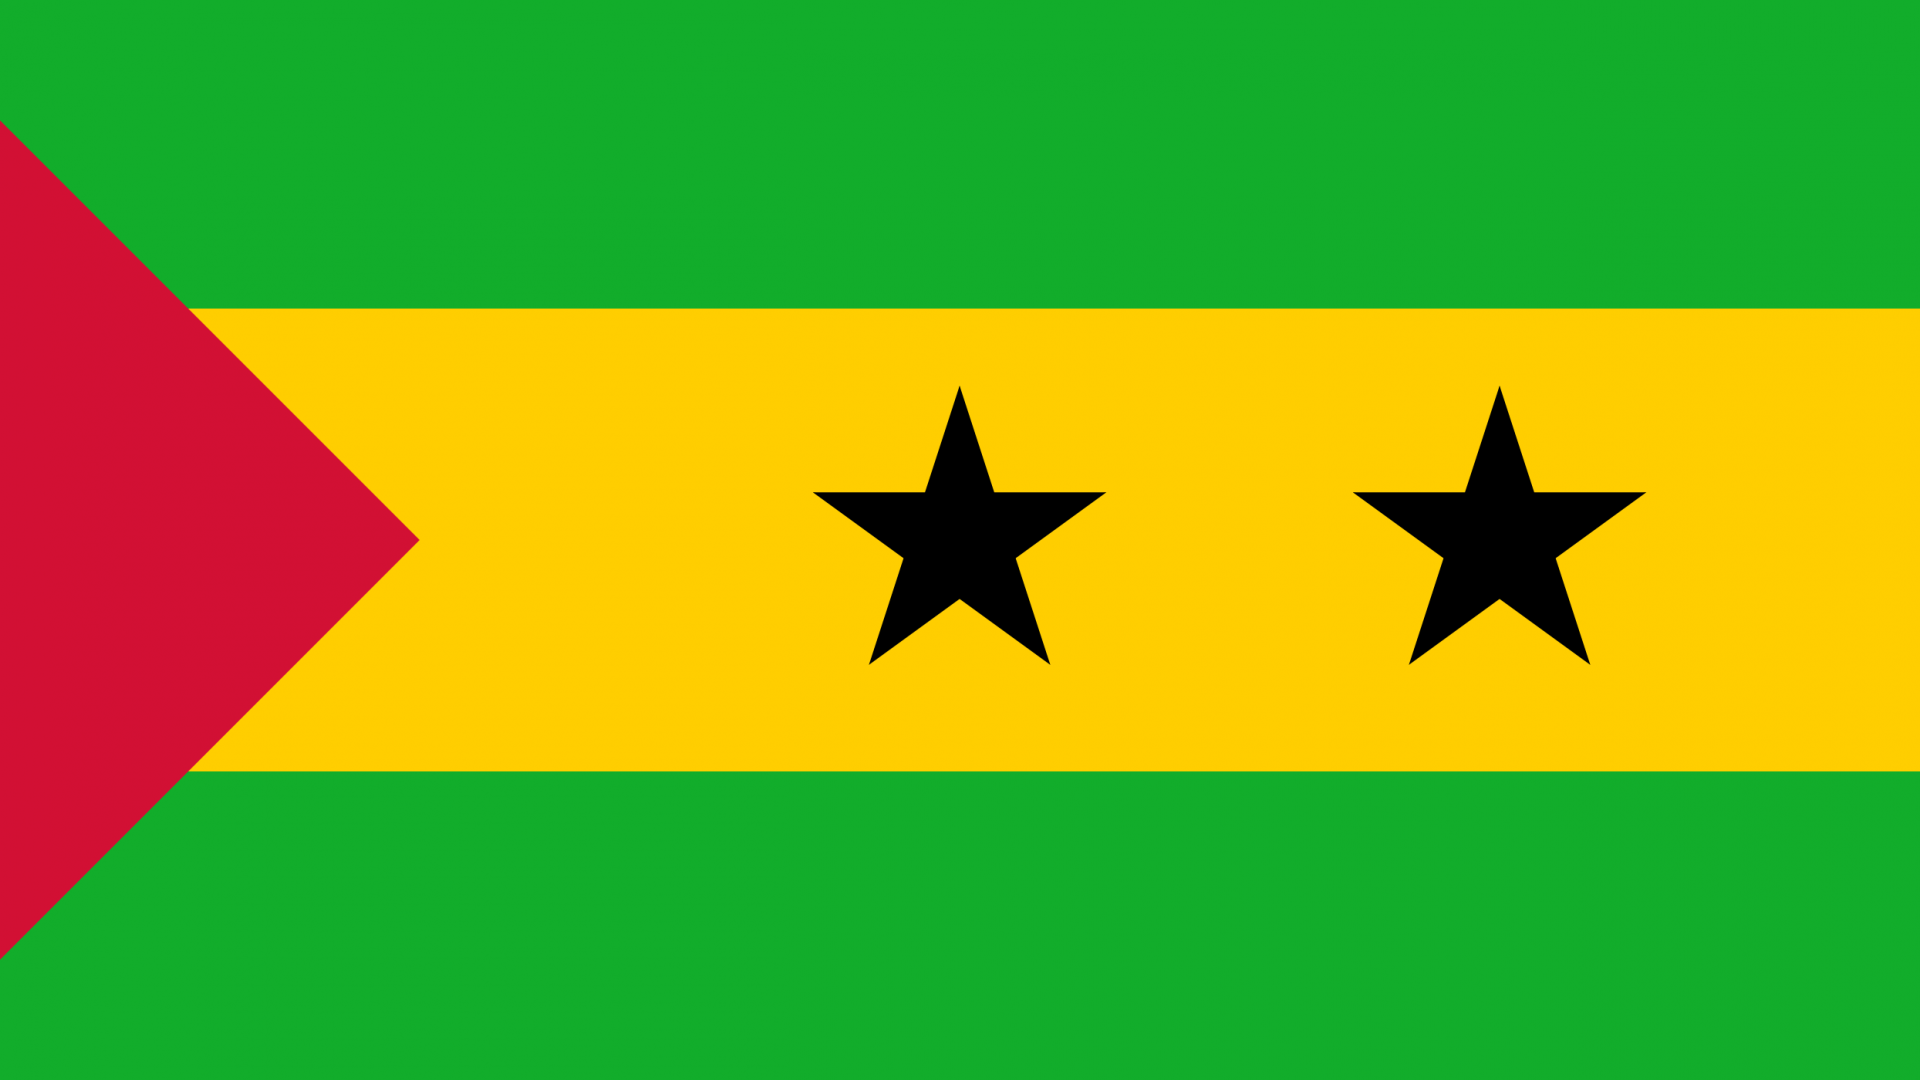 Sao Tome and Principe Flag   Wallpaper High Definition High Quality 1920x1080